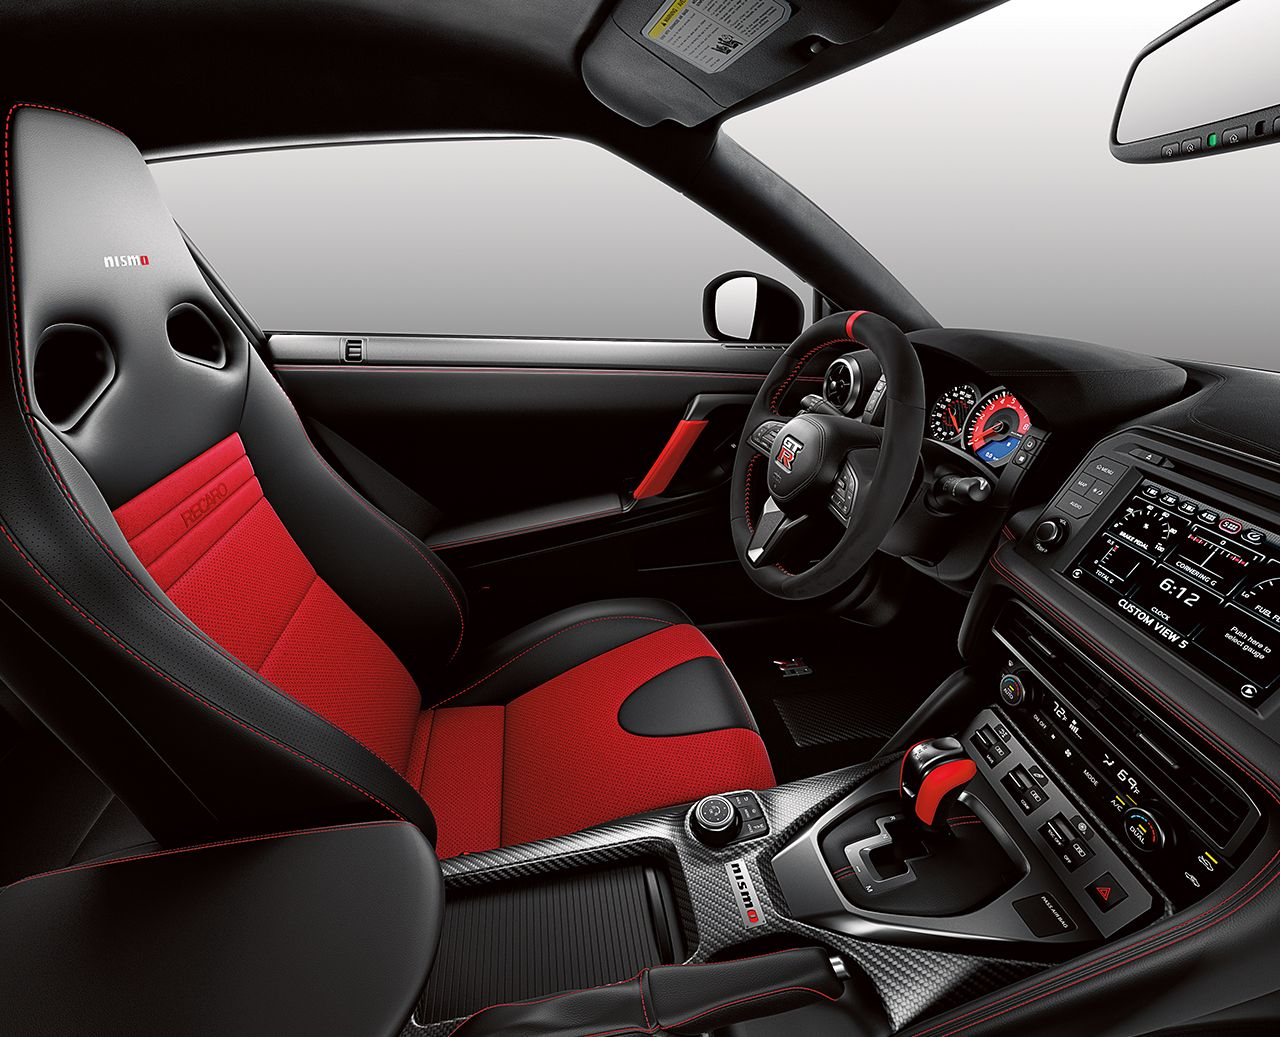 2017 Nissan Gt R Nismo Interior With Red And Black Details